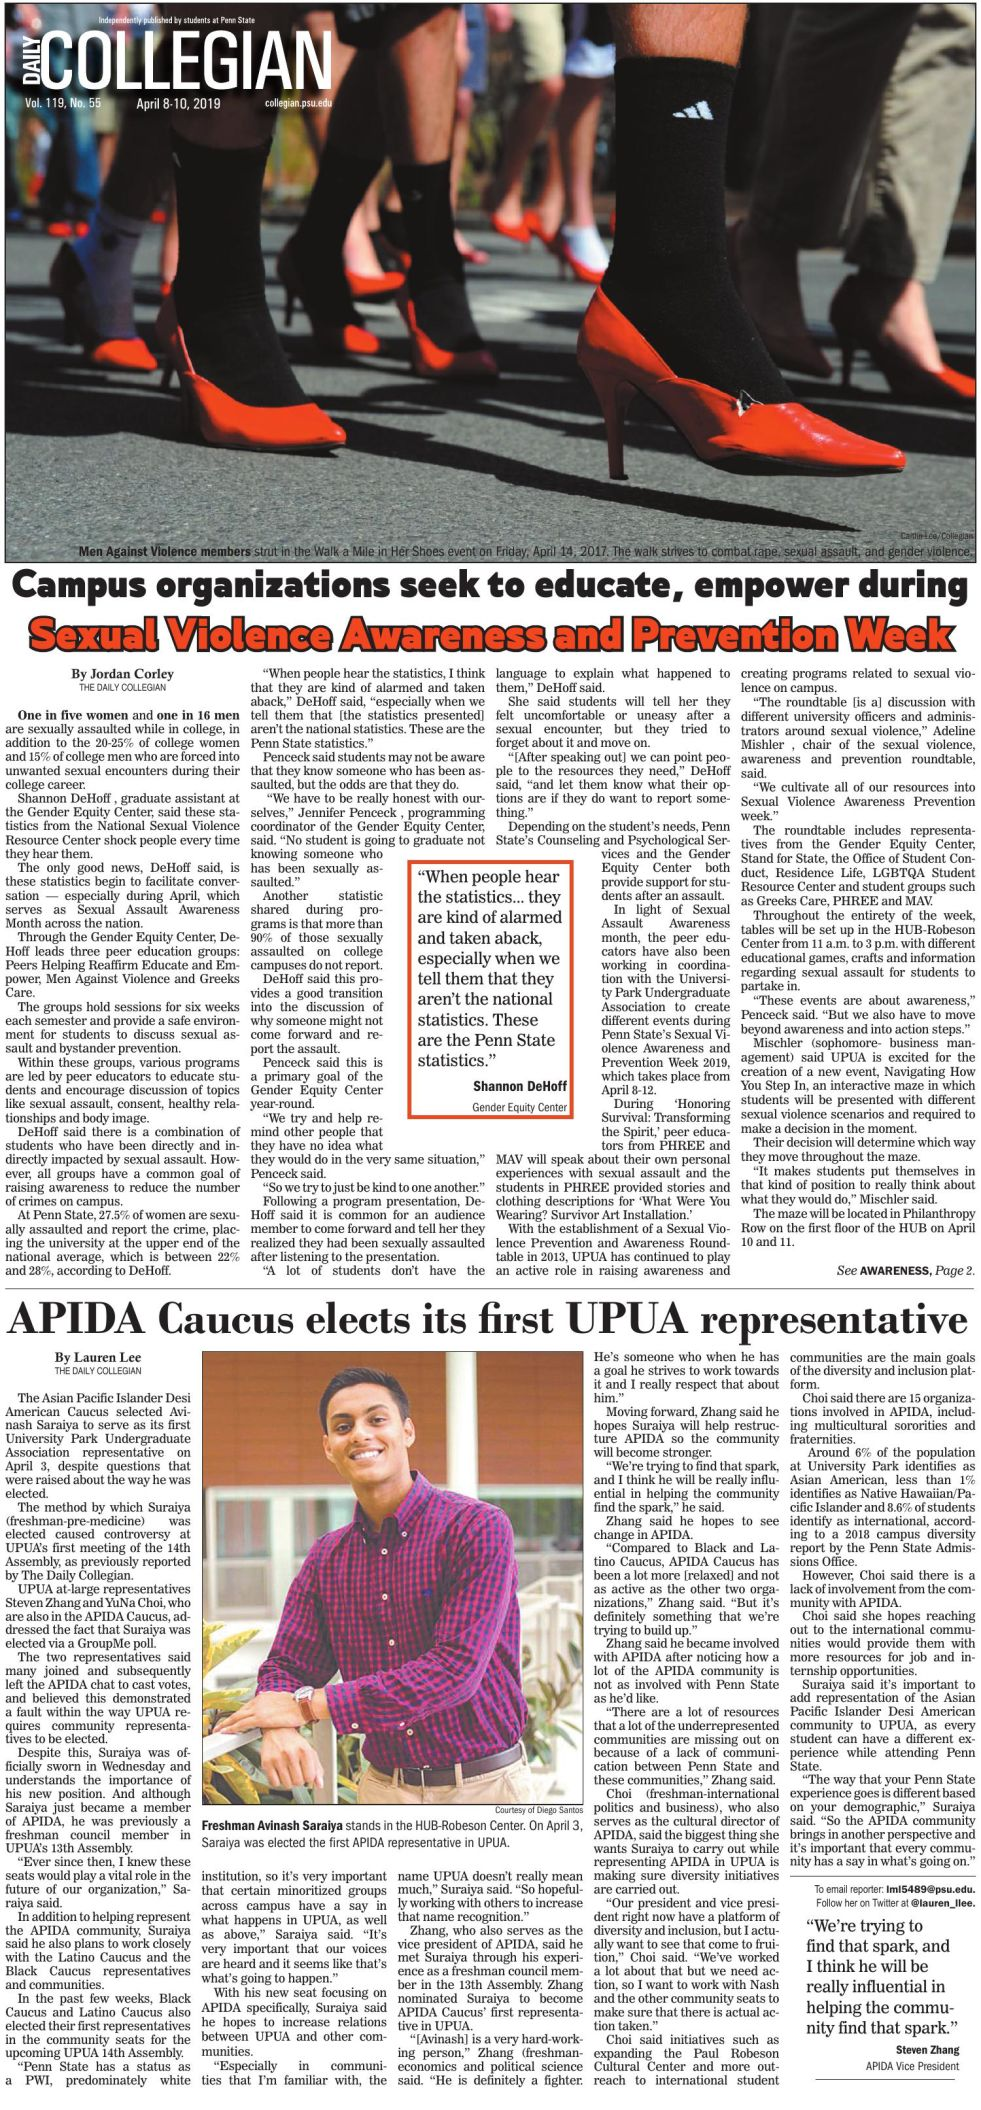 The Daily Collegian for April 8, 2019